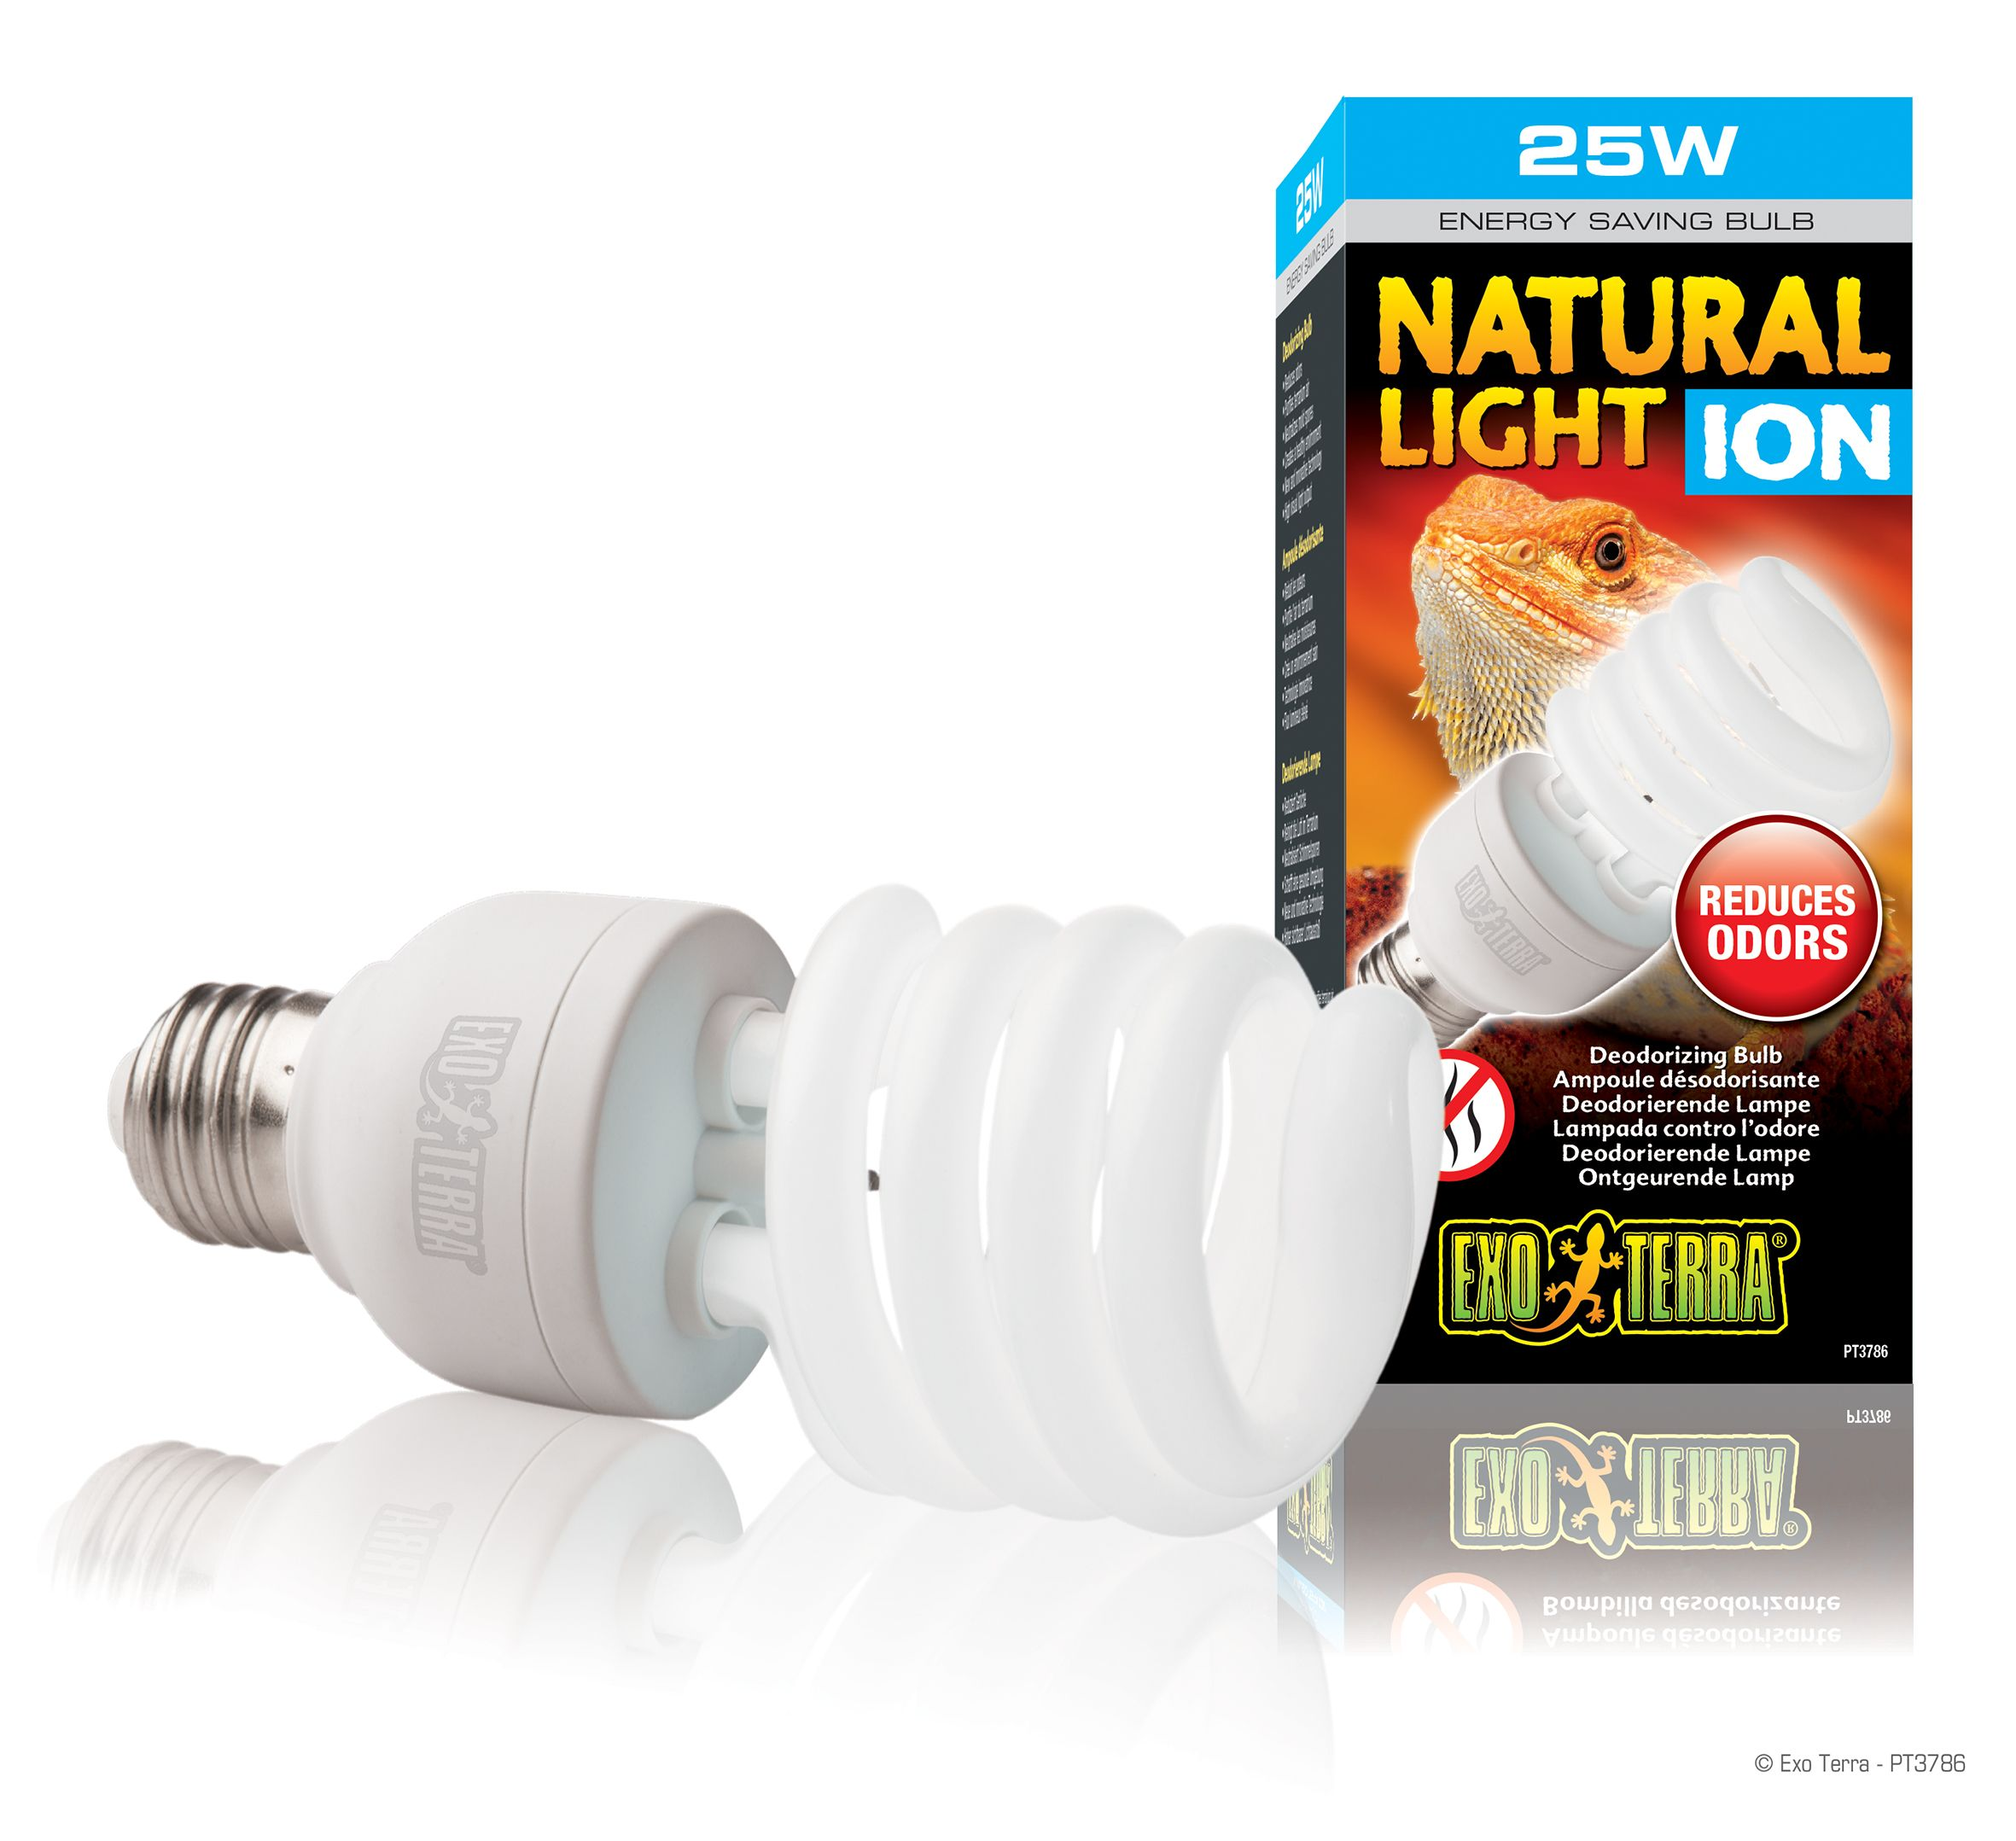 negative ions air purifier light bulb. Negatively charged